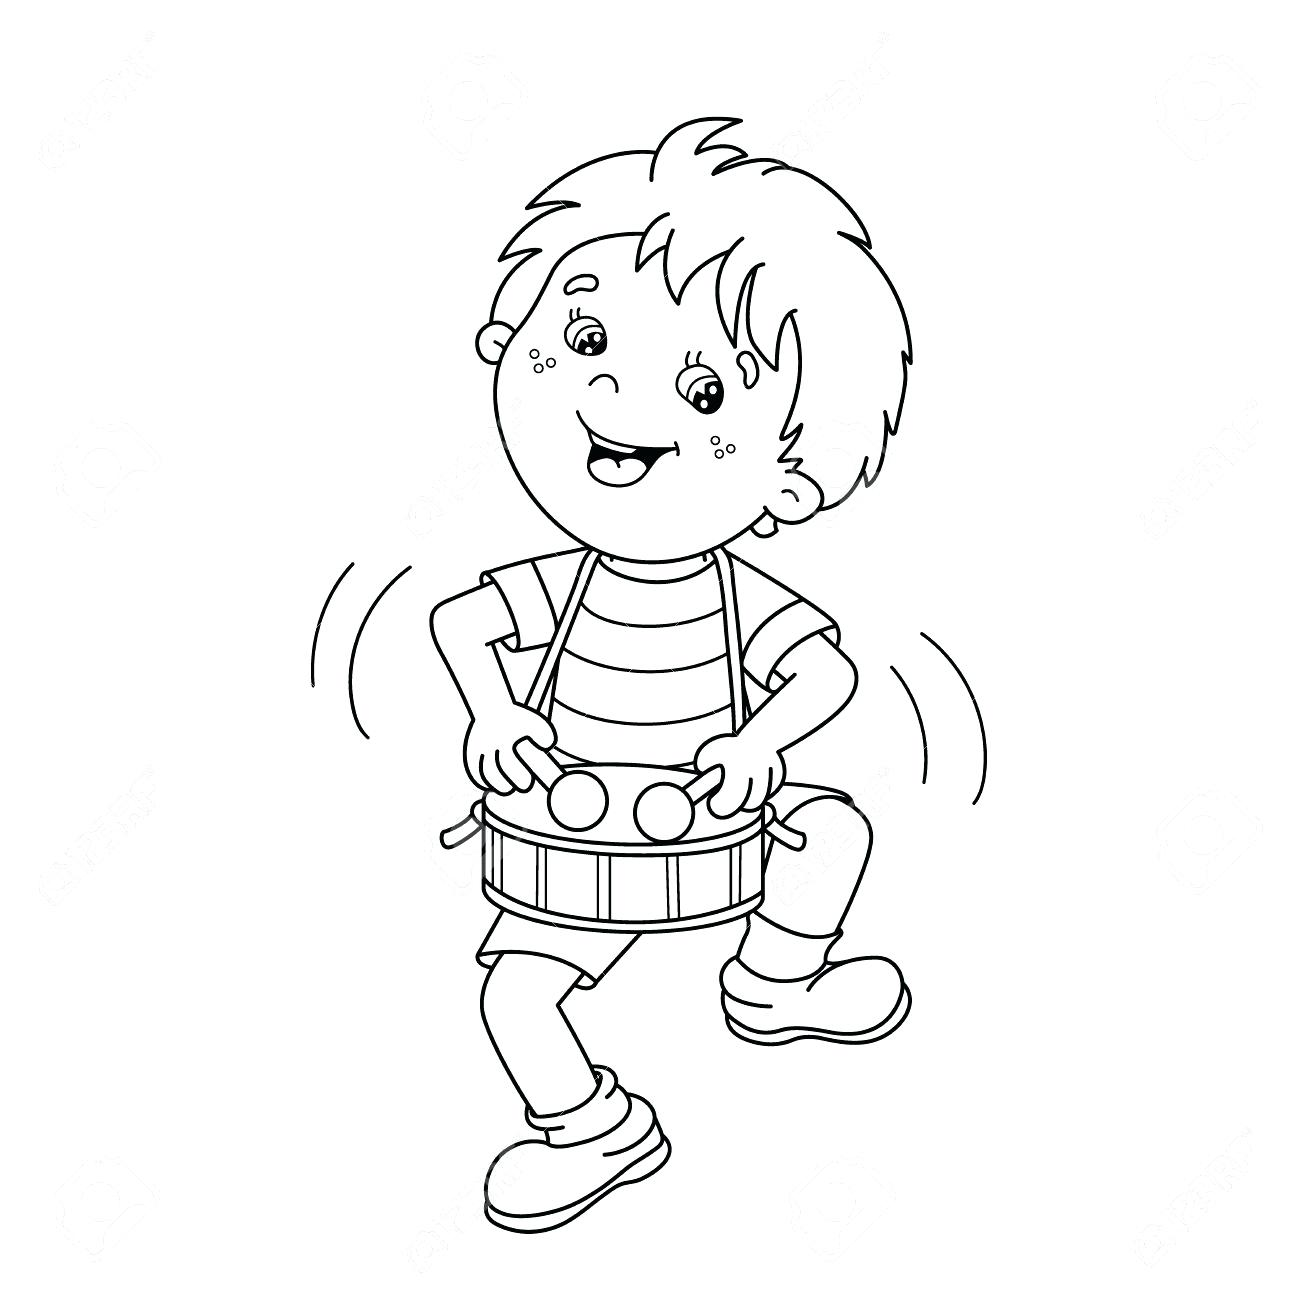 Person Outline Drawing at GetDrawings.com | Free for personal use ...